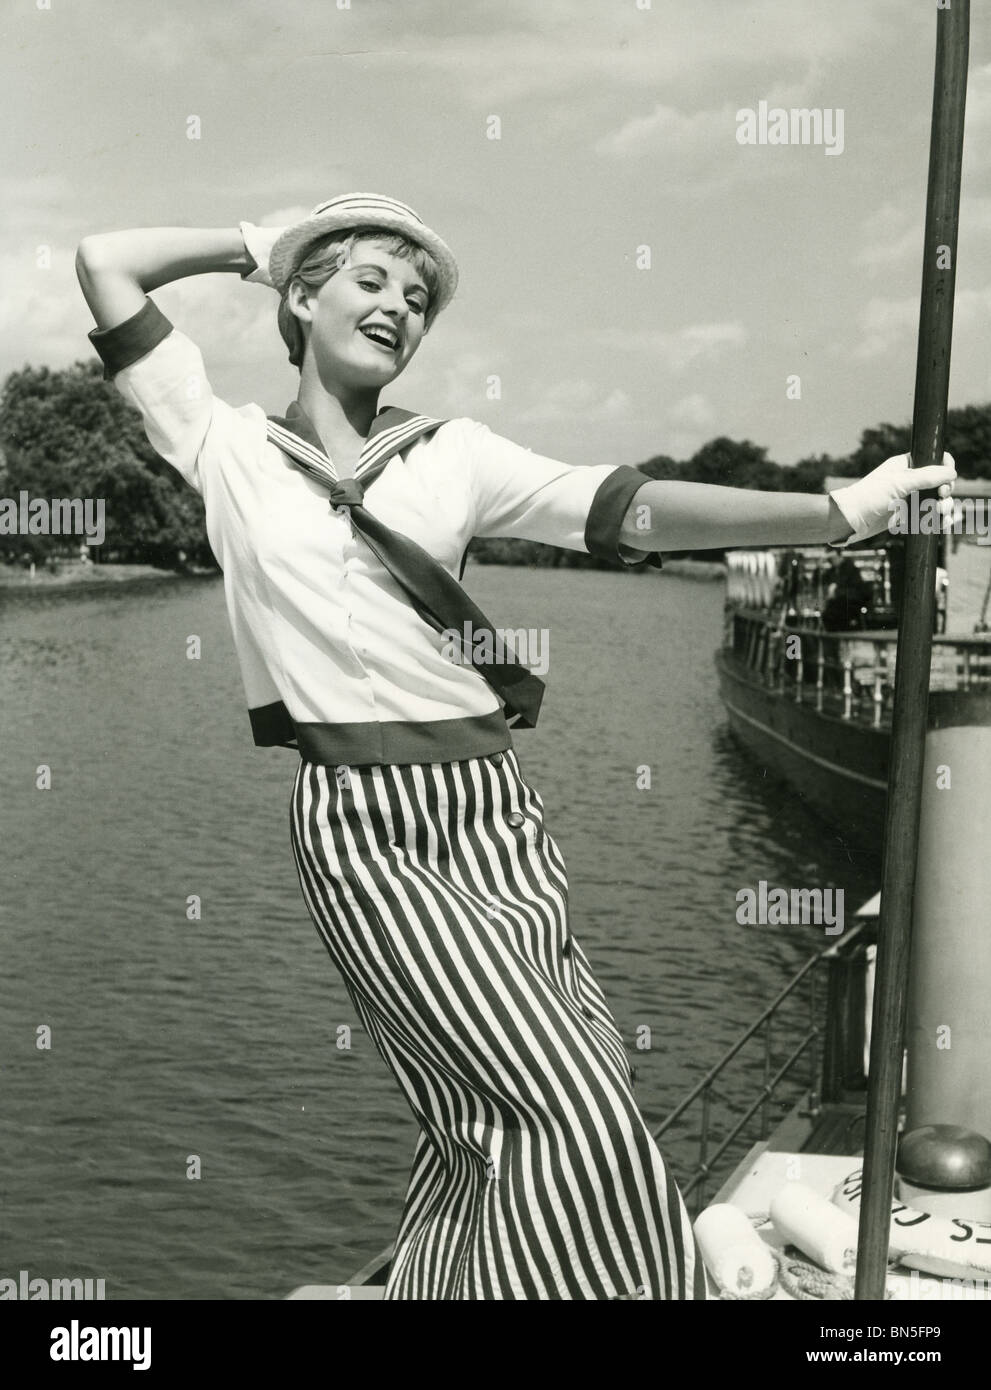 JILL IRELAND (1936-1990) English actress here while filming Three Men In A Boat in 1956 - Stock Image